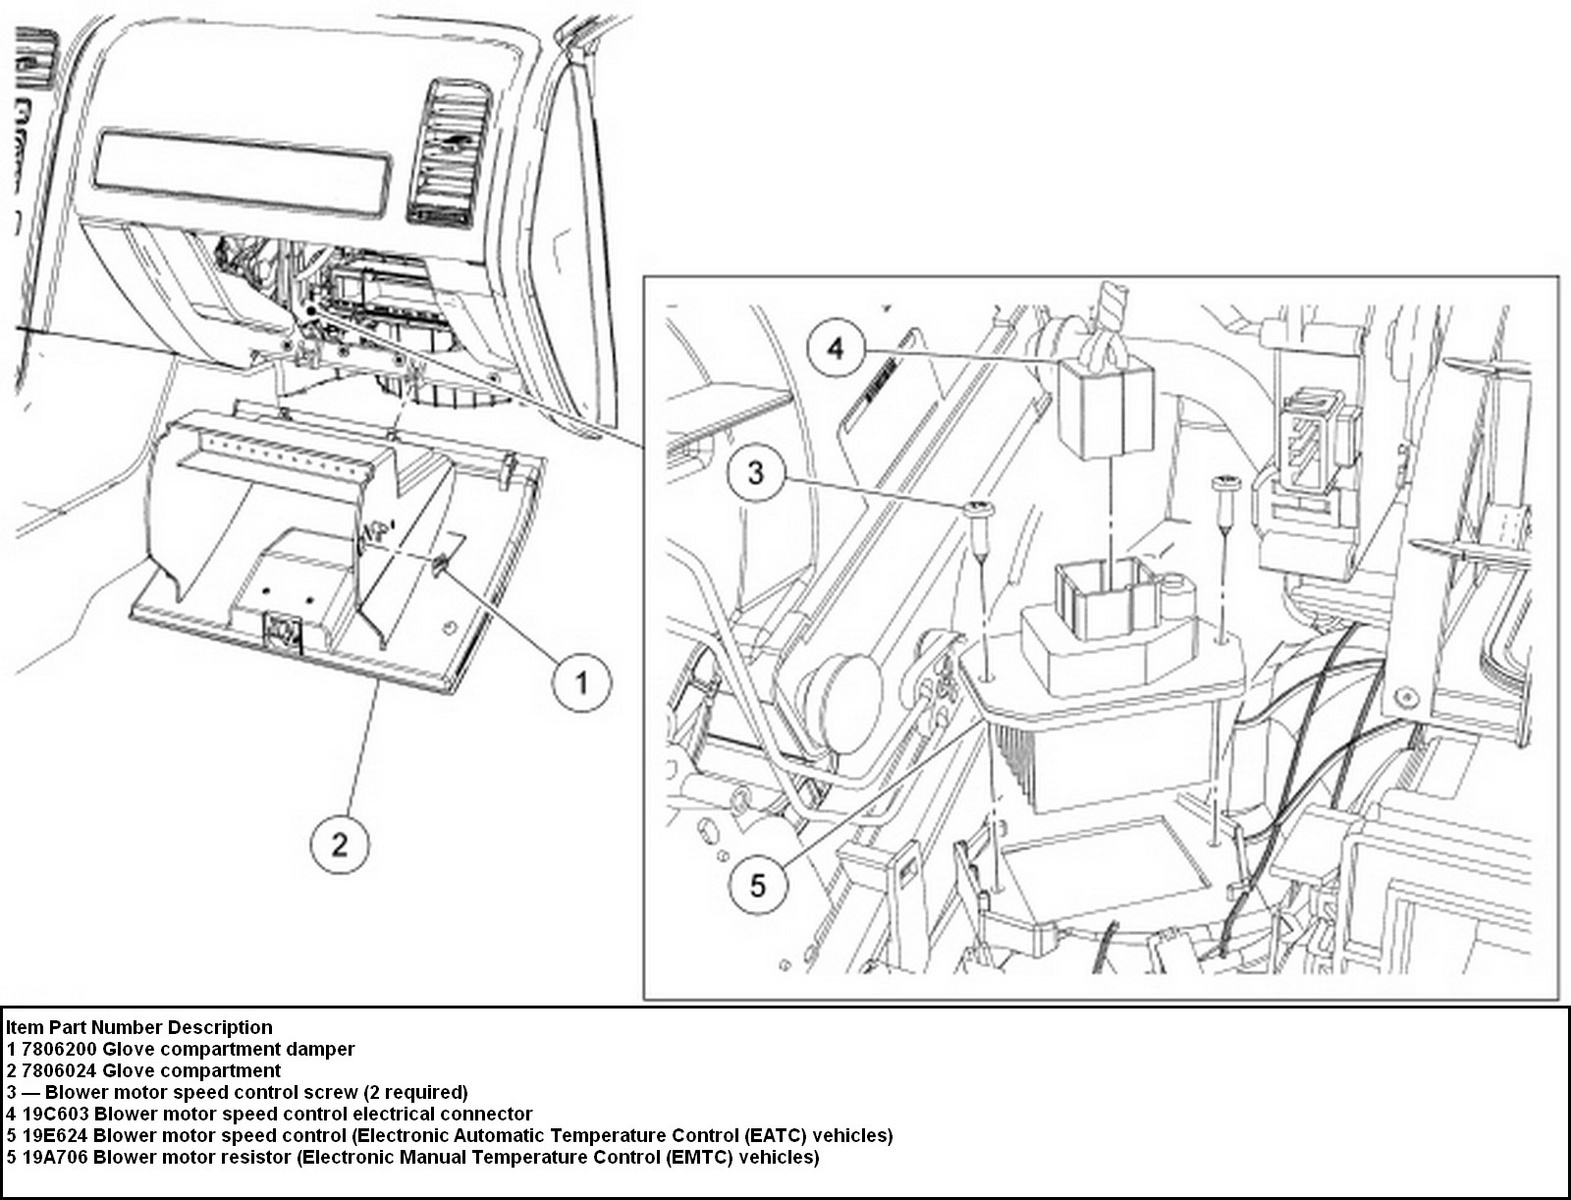 2011 Ford Fusion Blower Motor Resistor Wiring Diagram F Blower Motor Wiring Diagram on